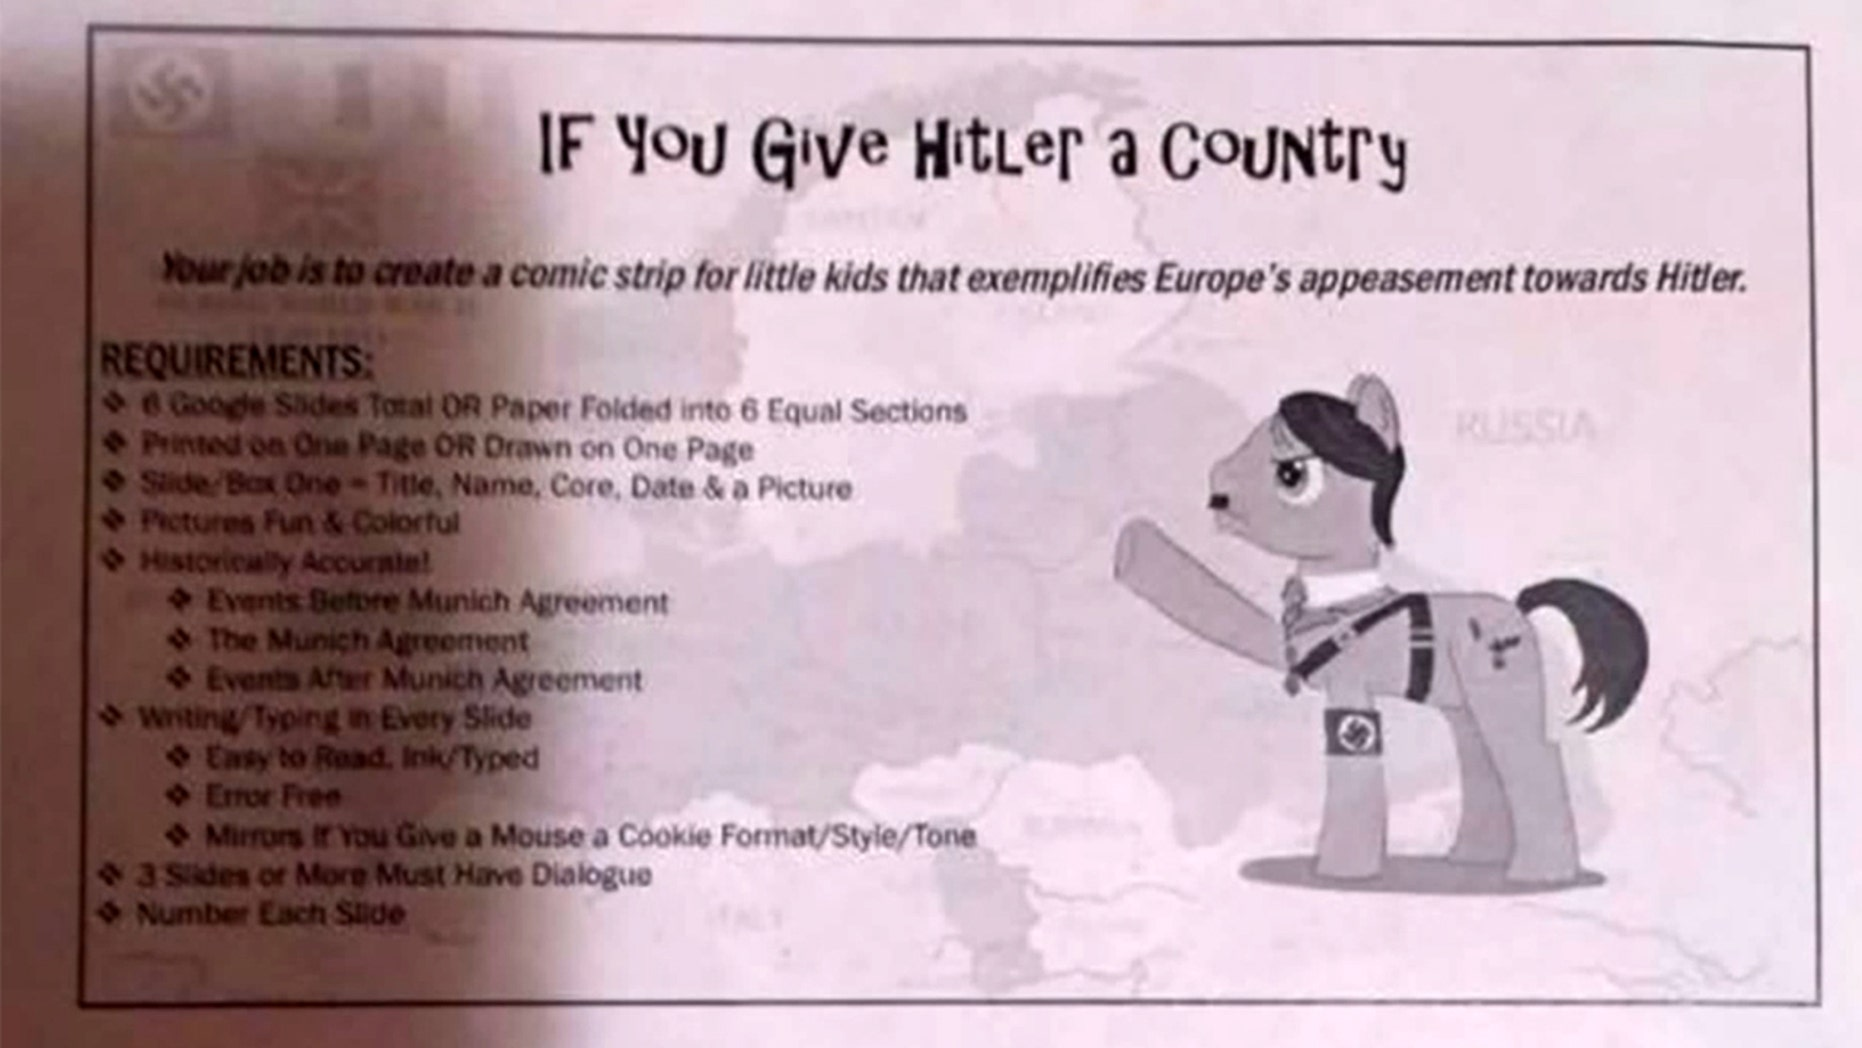 Some parents were upset after middle school students received an Adolph Hitler-themed homework assignment.